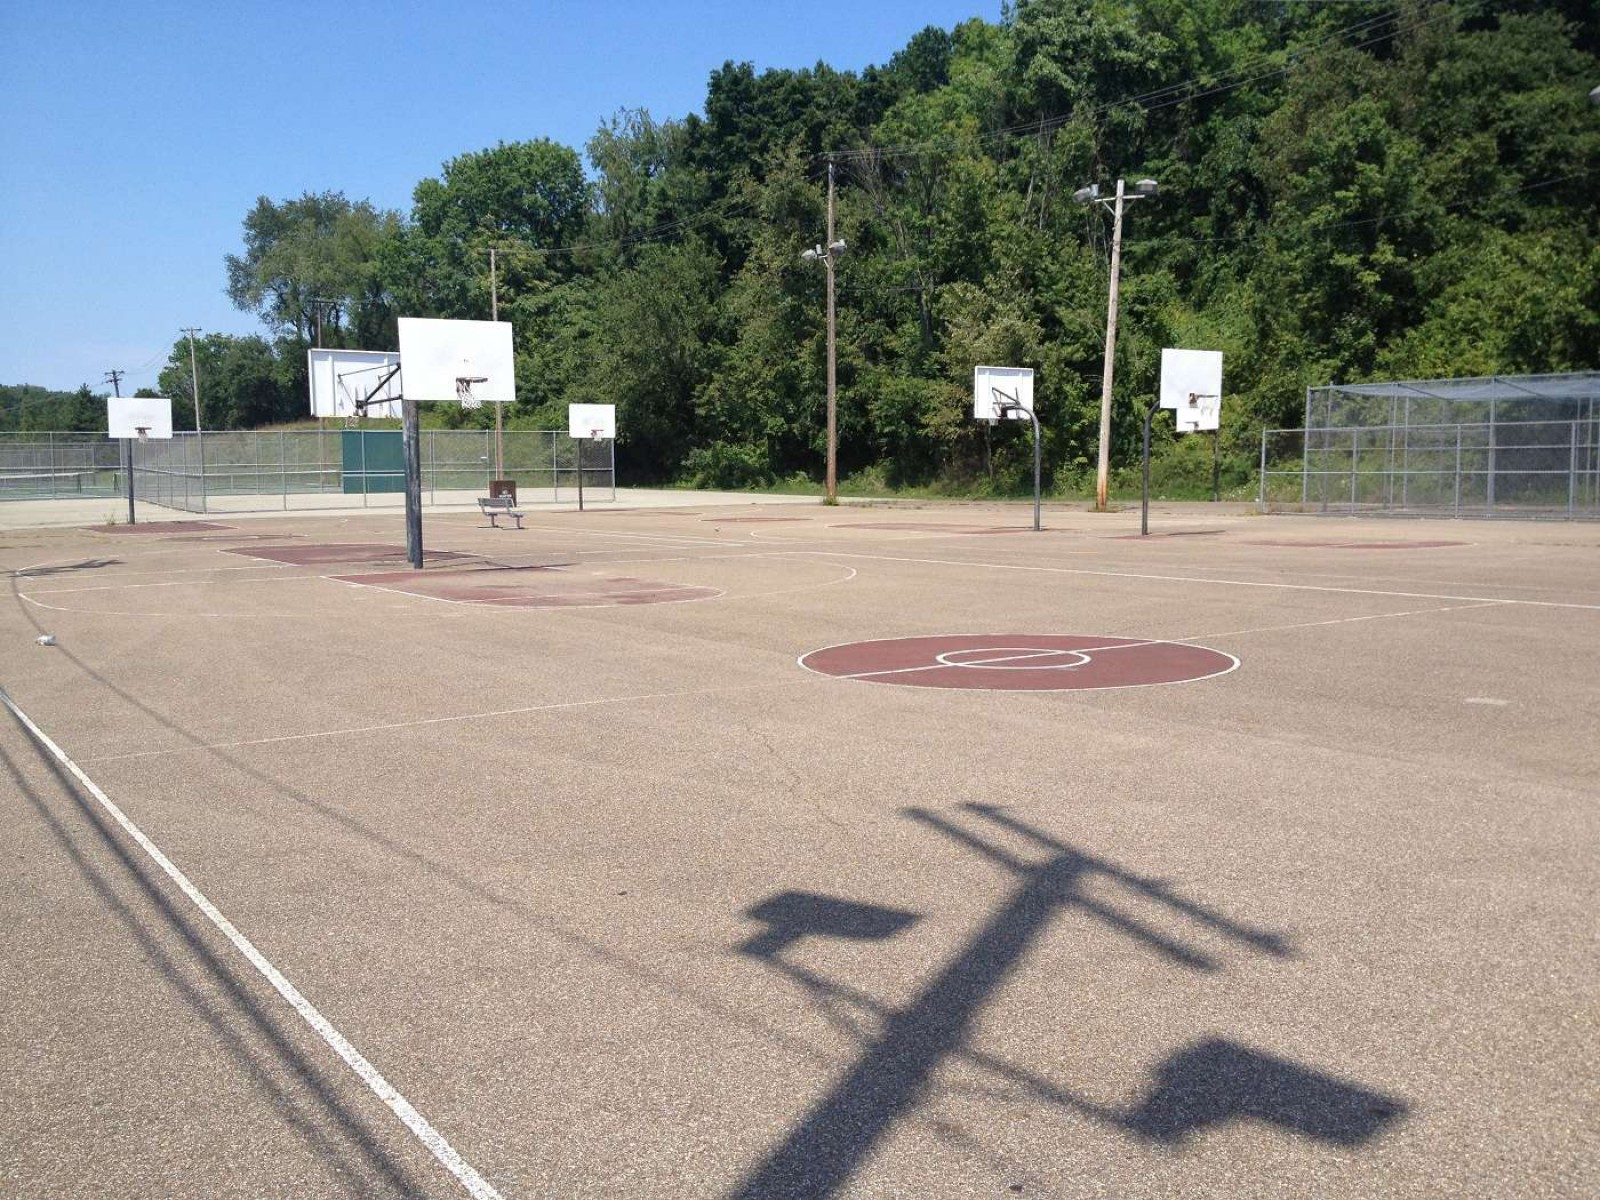 South Park Basketball Courts, South Park Township, PA, United States